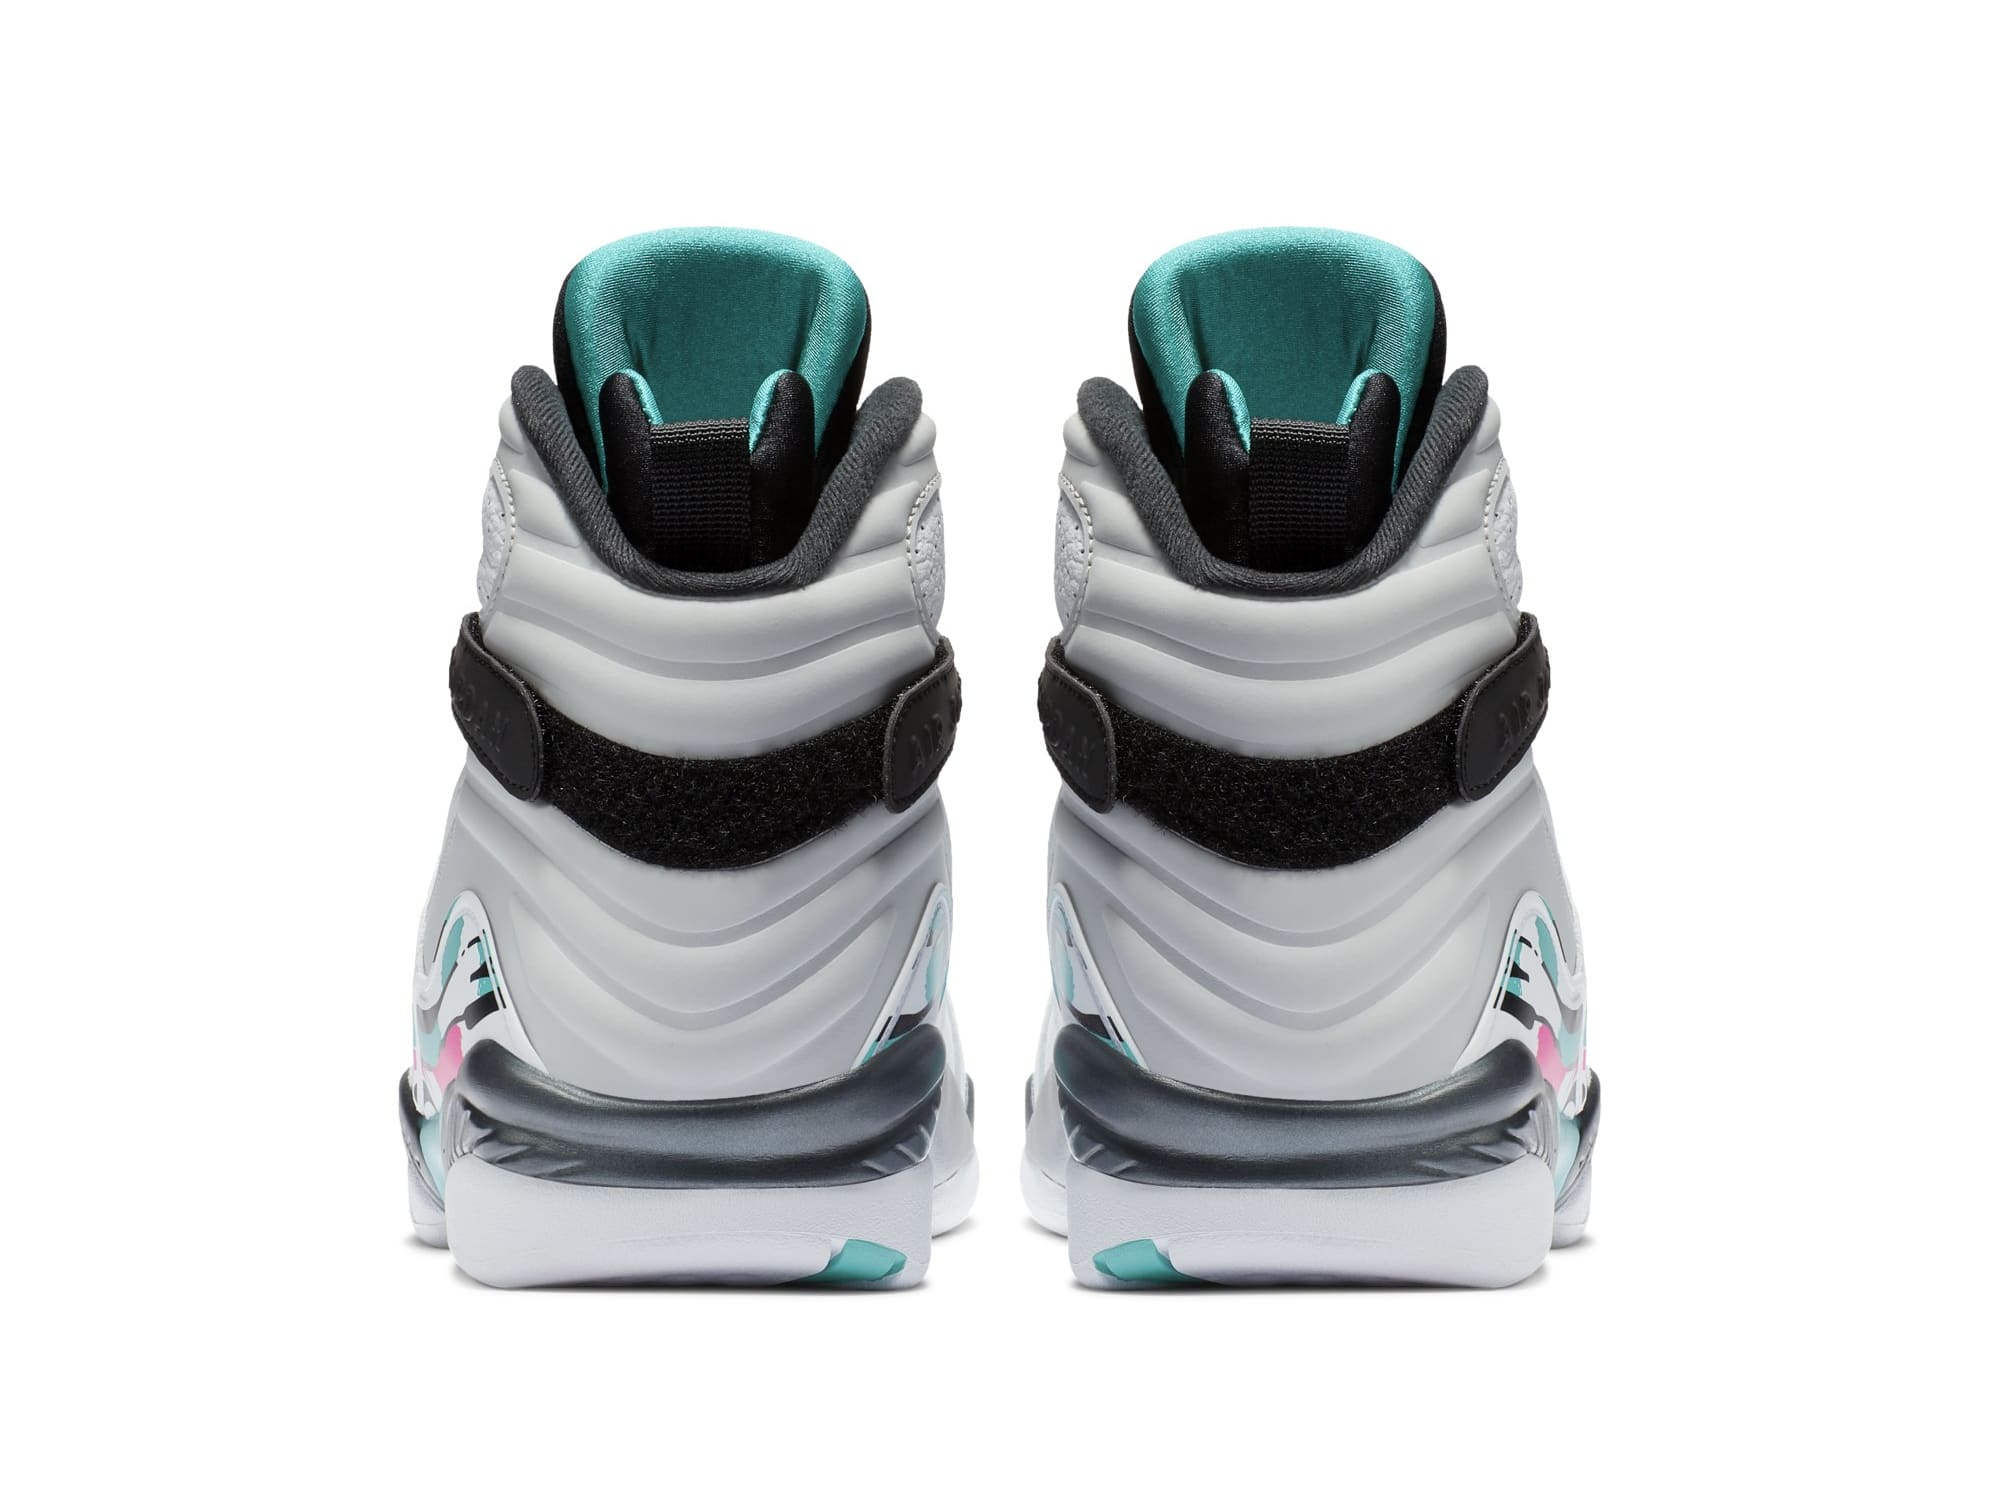 814573448608c Air Jordan 8 VIII South Beach Release Date 305381-113 | Sole Collector